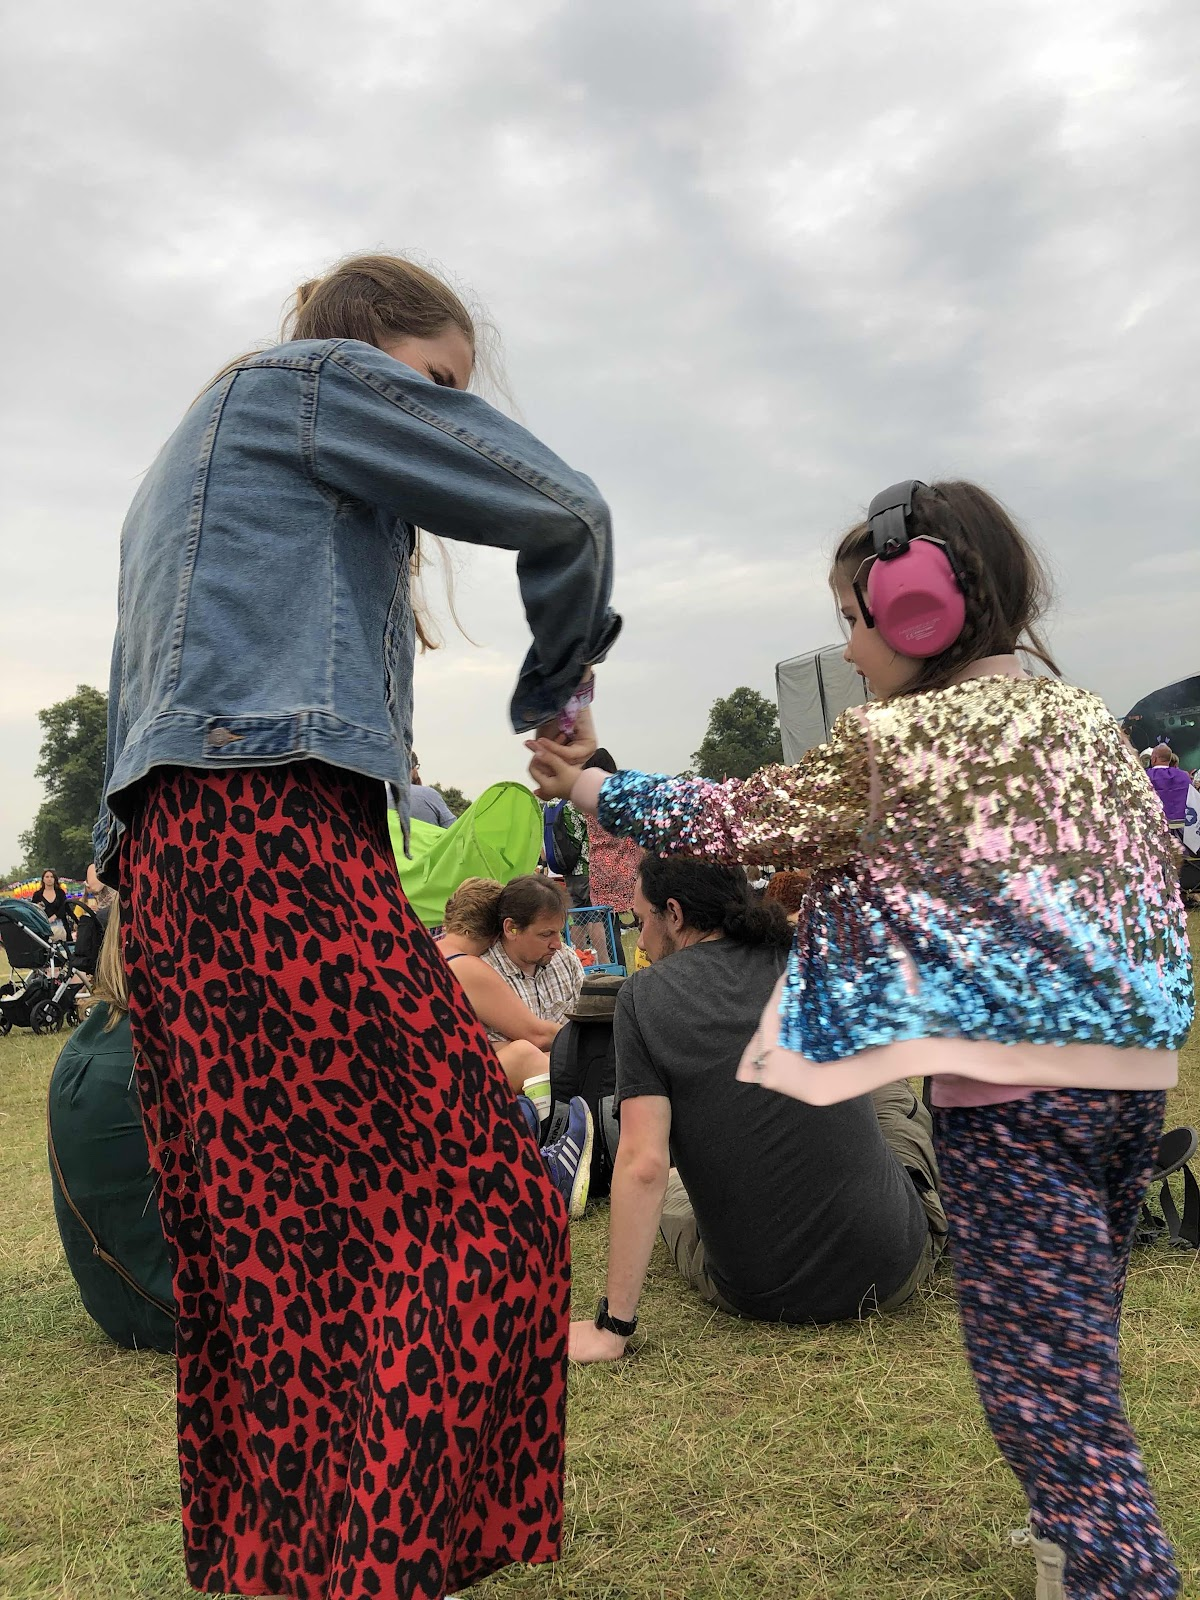 Dancing at Wilderness Festival